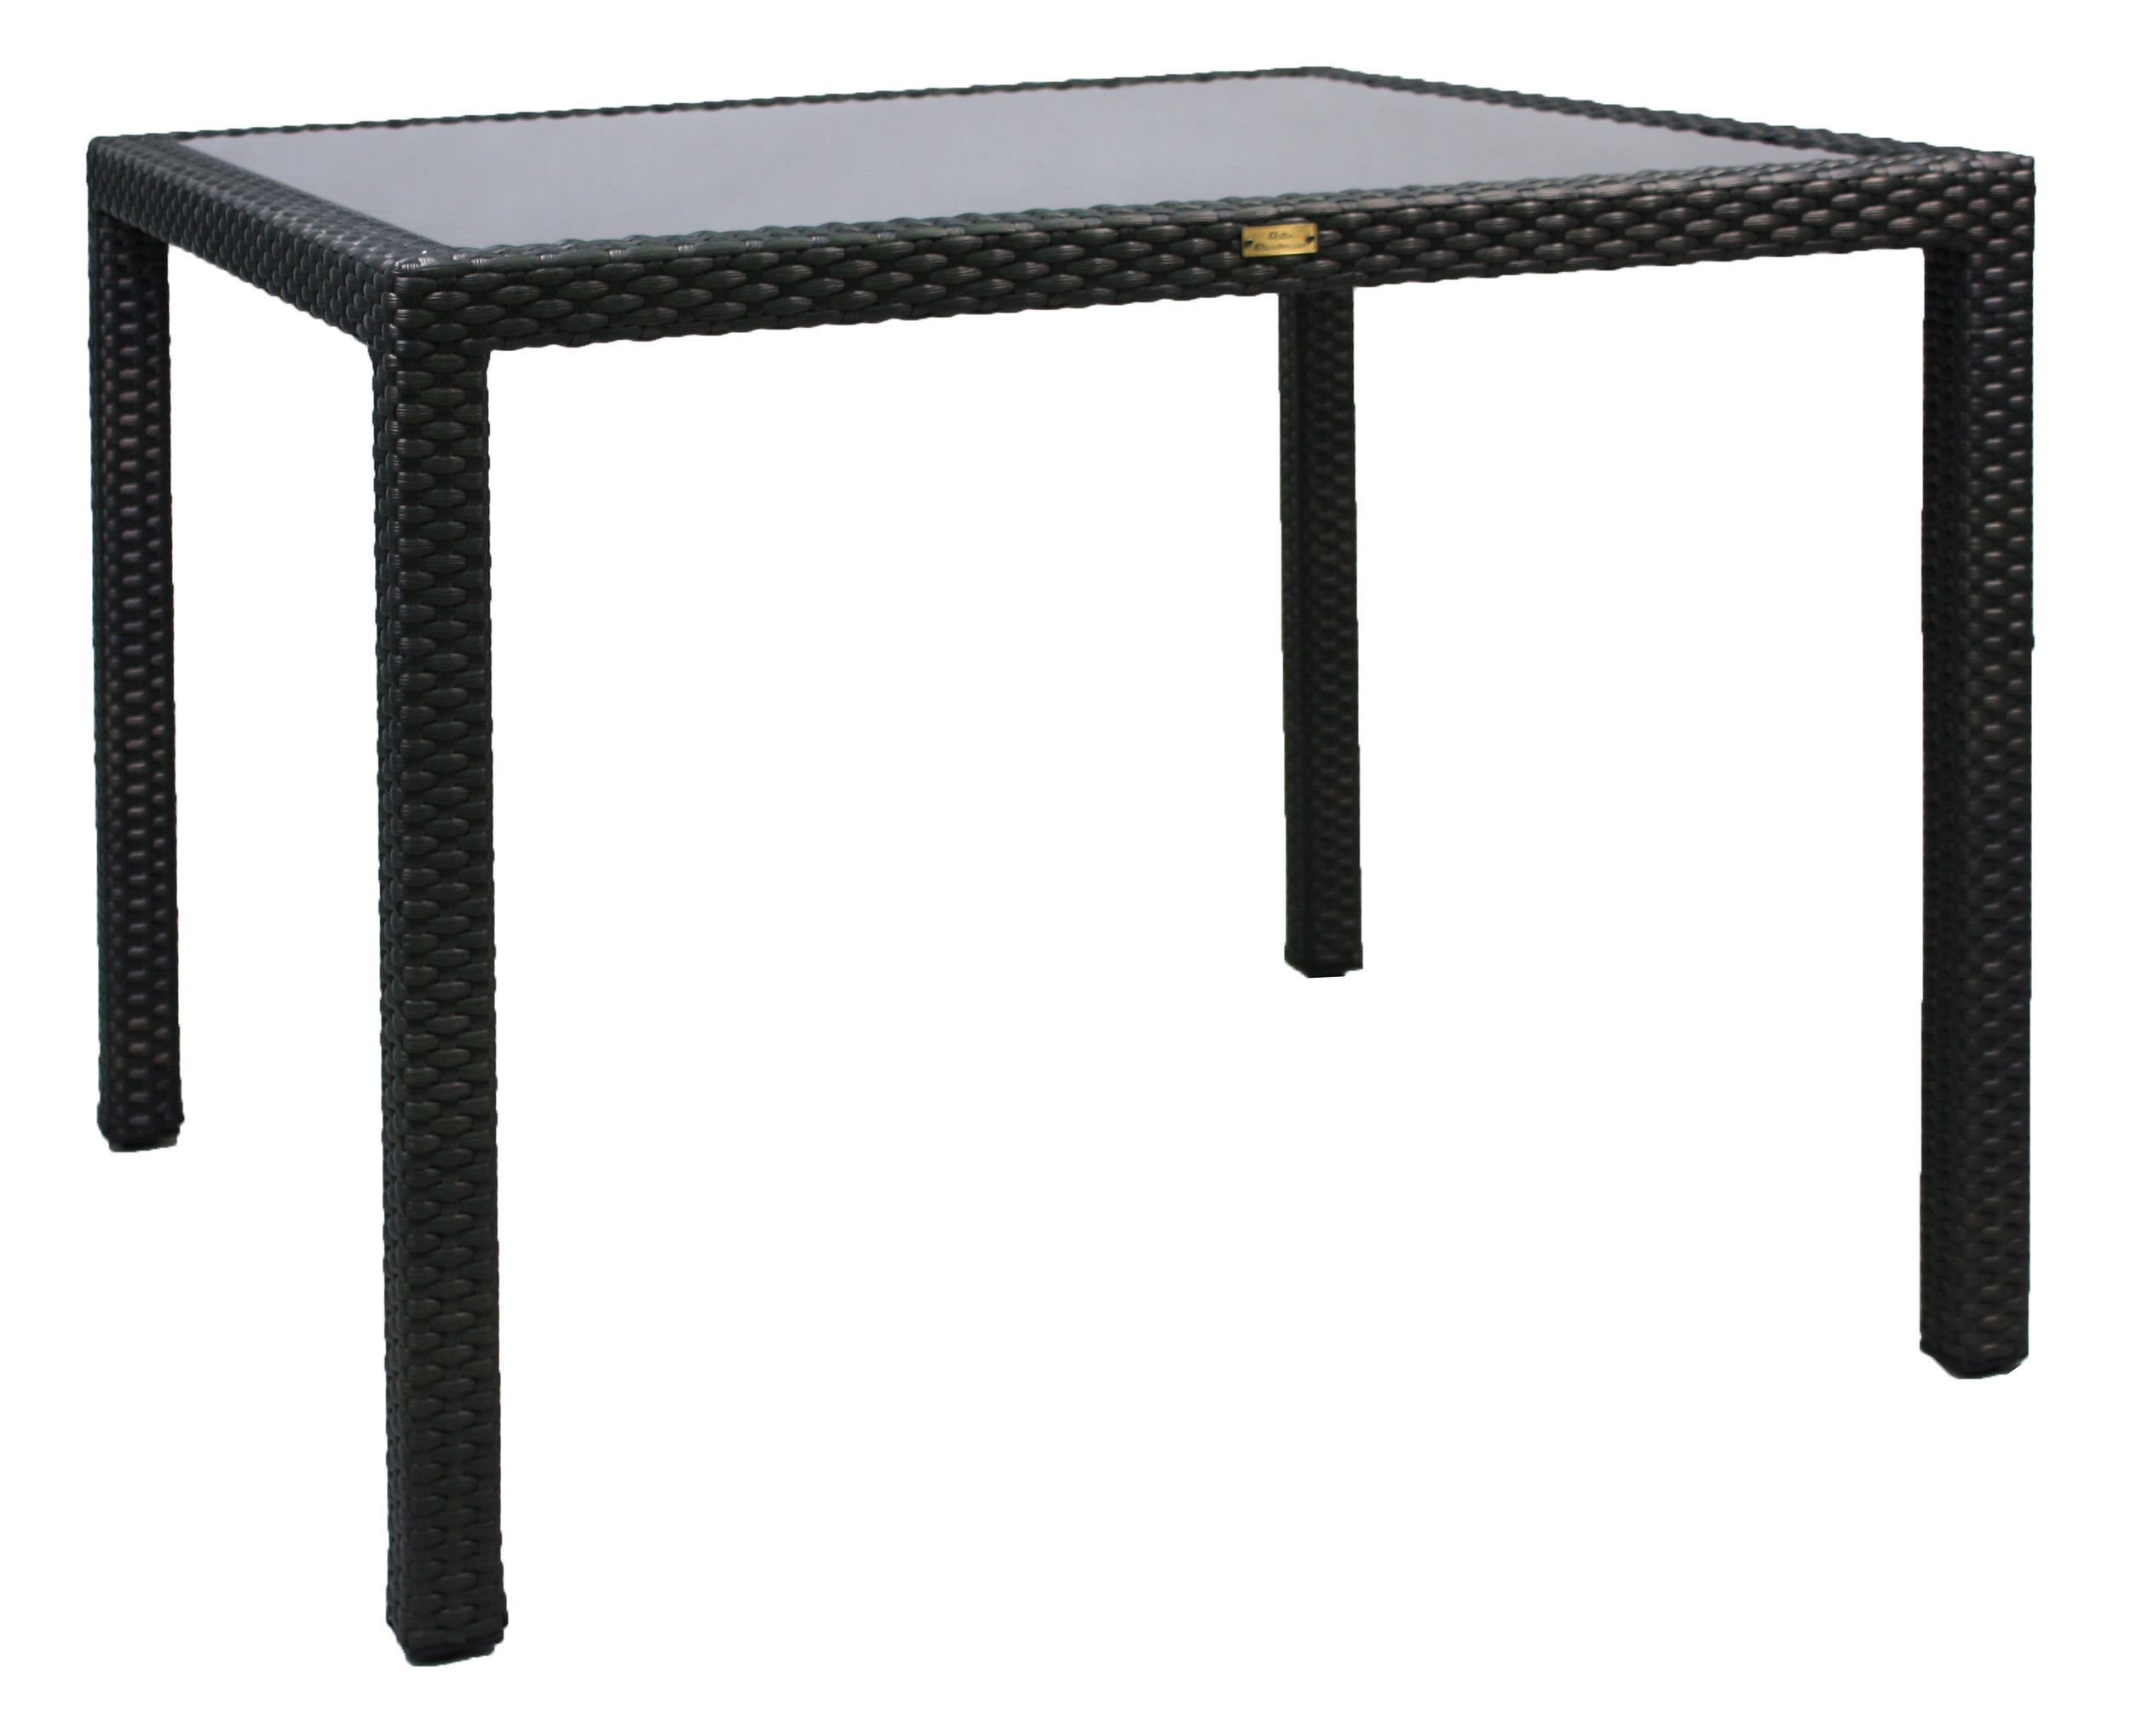 "957248 Del Mar 44"" Square Dining Table   44"" x 44"" x 29"""